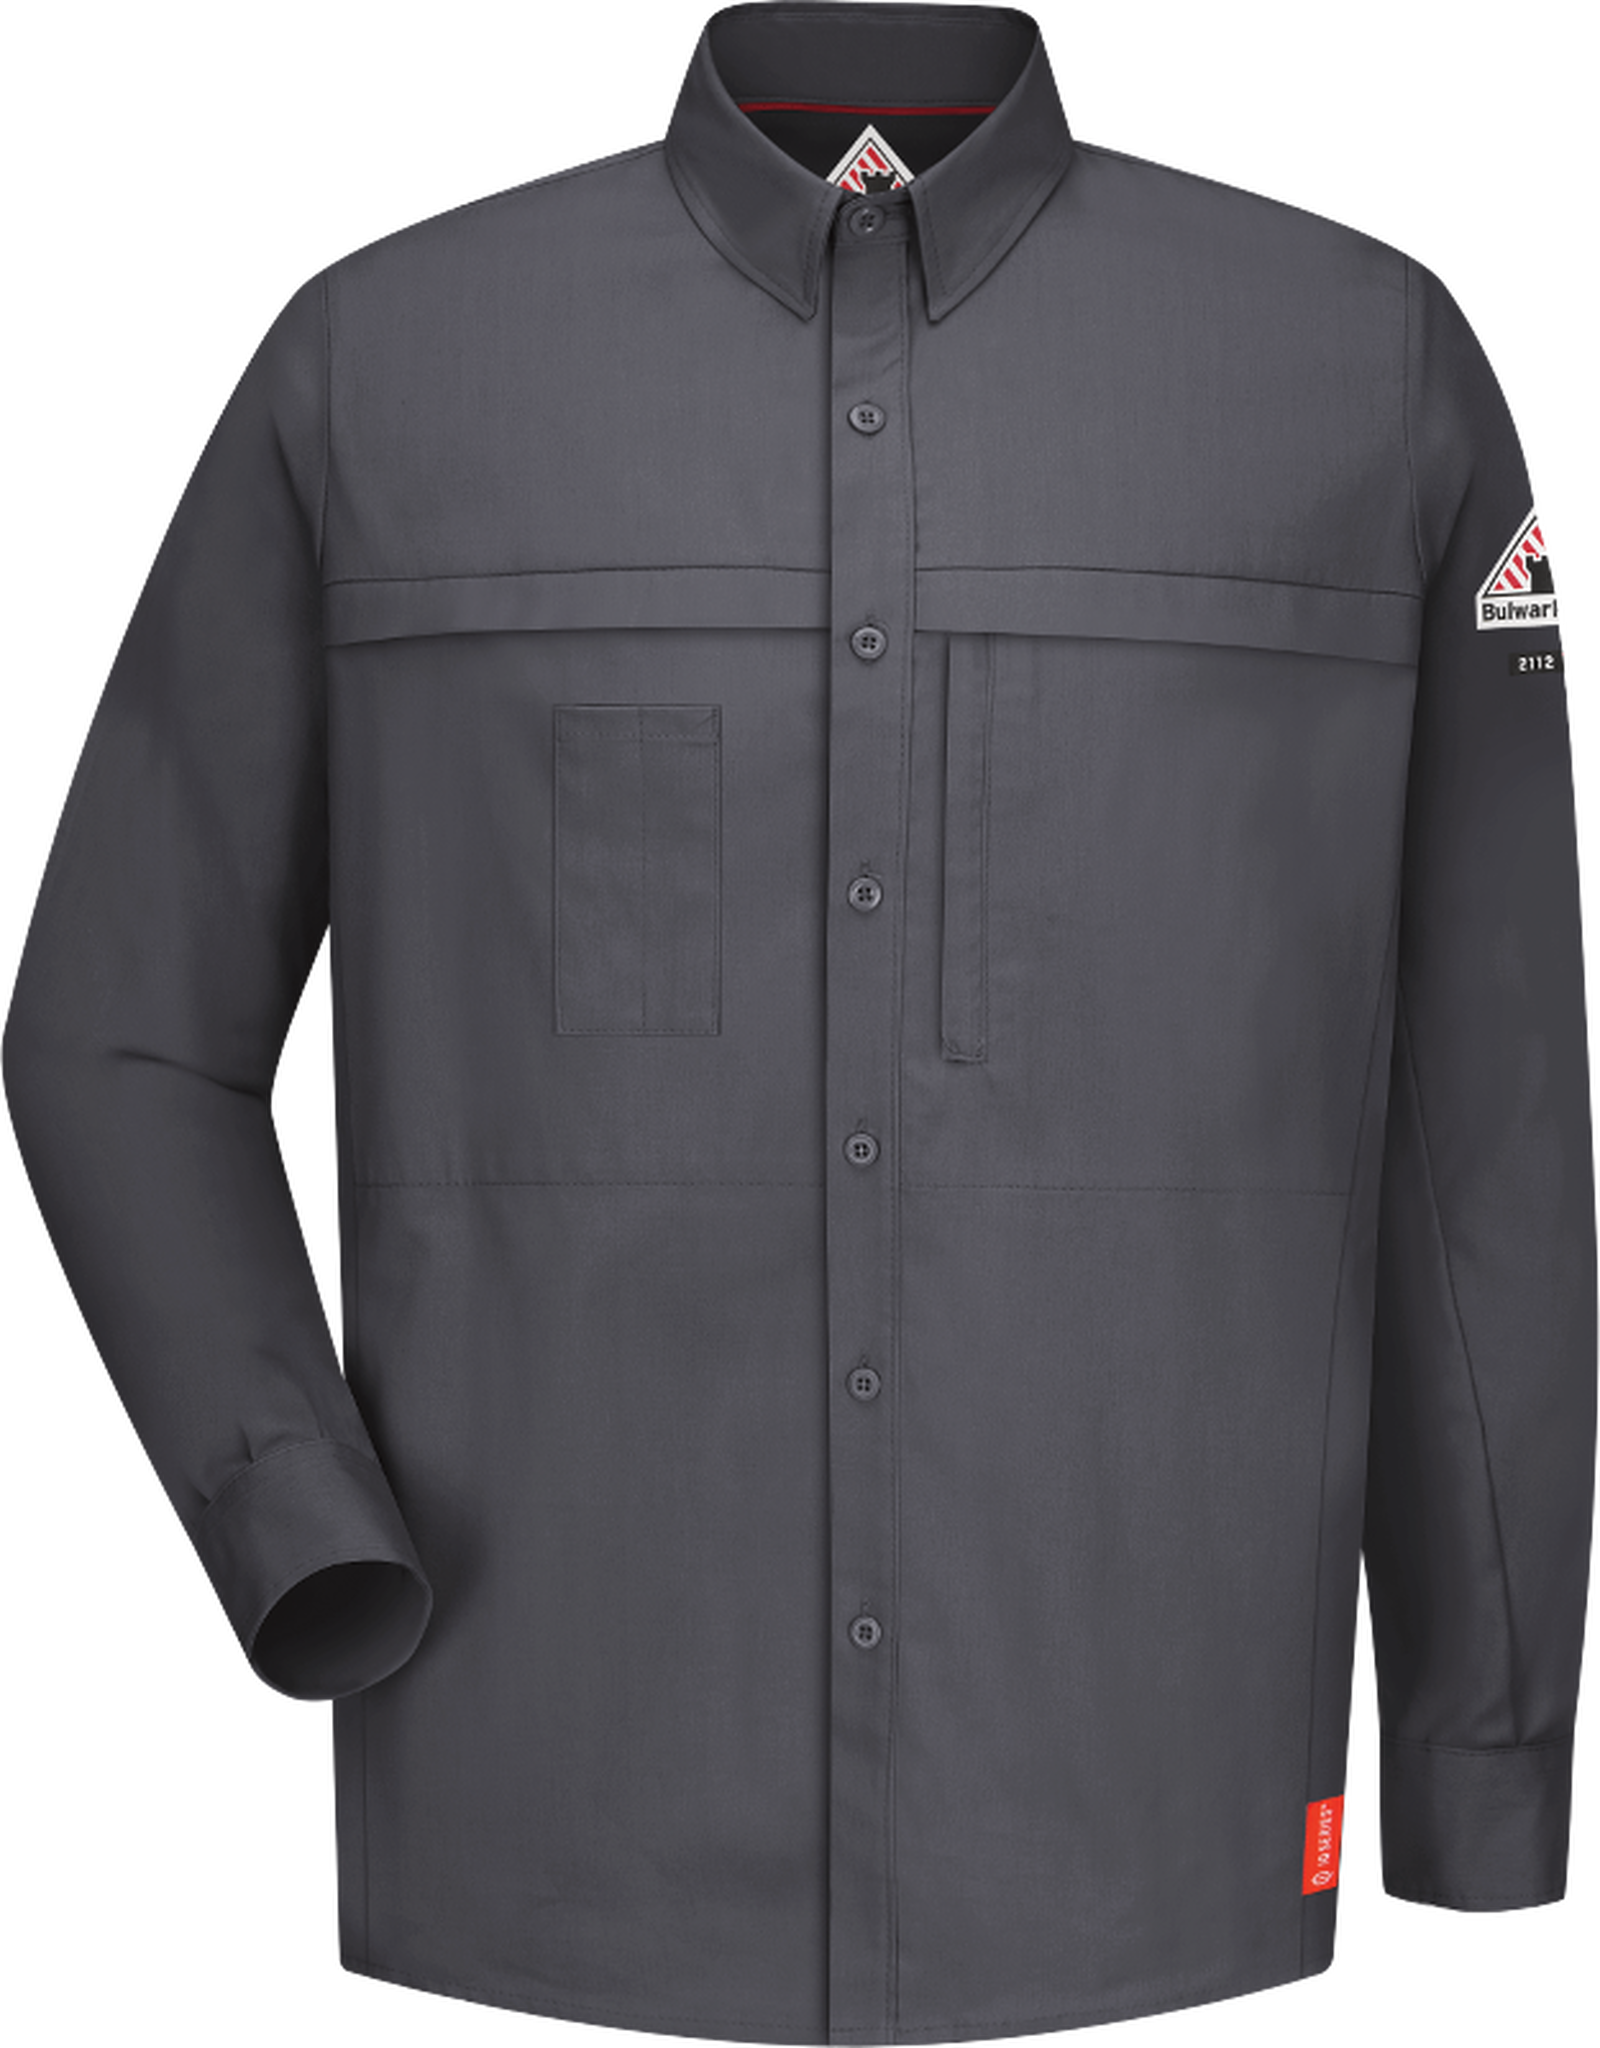 iQ Series Comfort Woven Concealed Pocket Men's Shirt